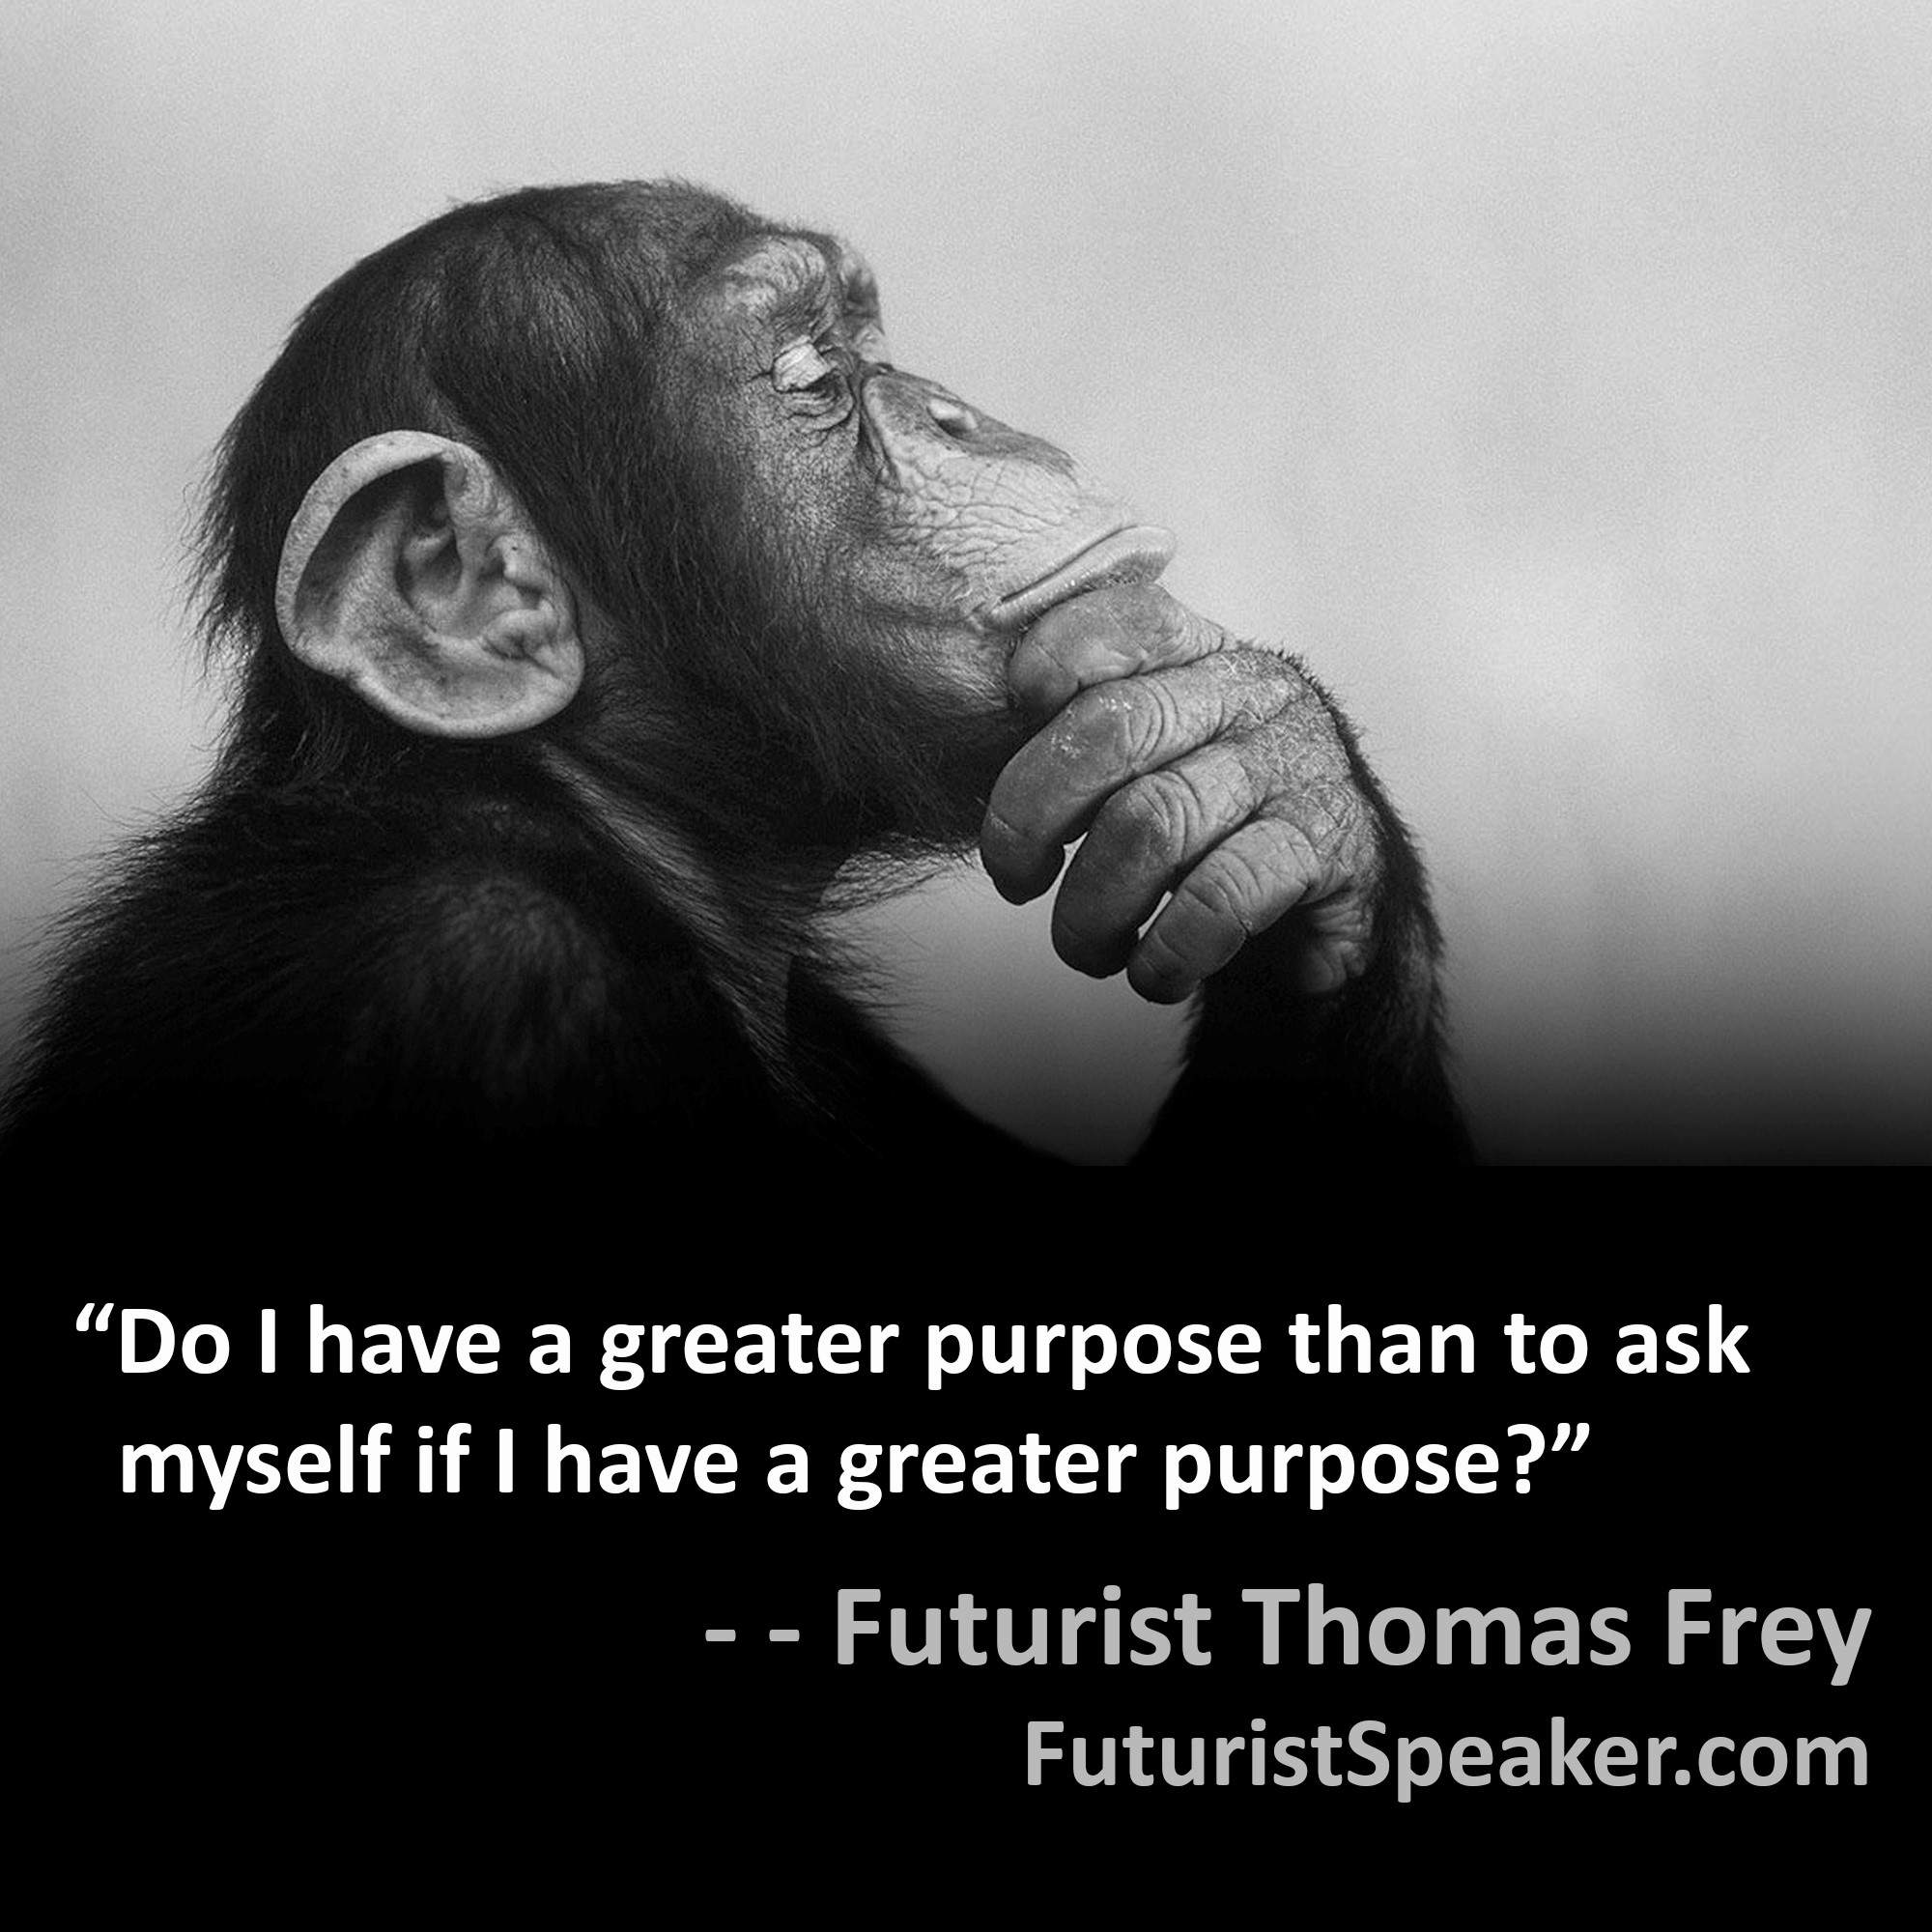 Thomas Frey Futurist Speaker Famous Quote: Do I have a greater purpose than to ask myself if I have a greater purpose.